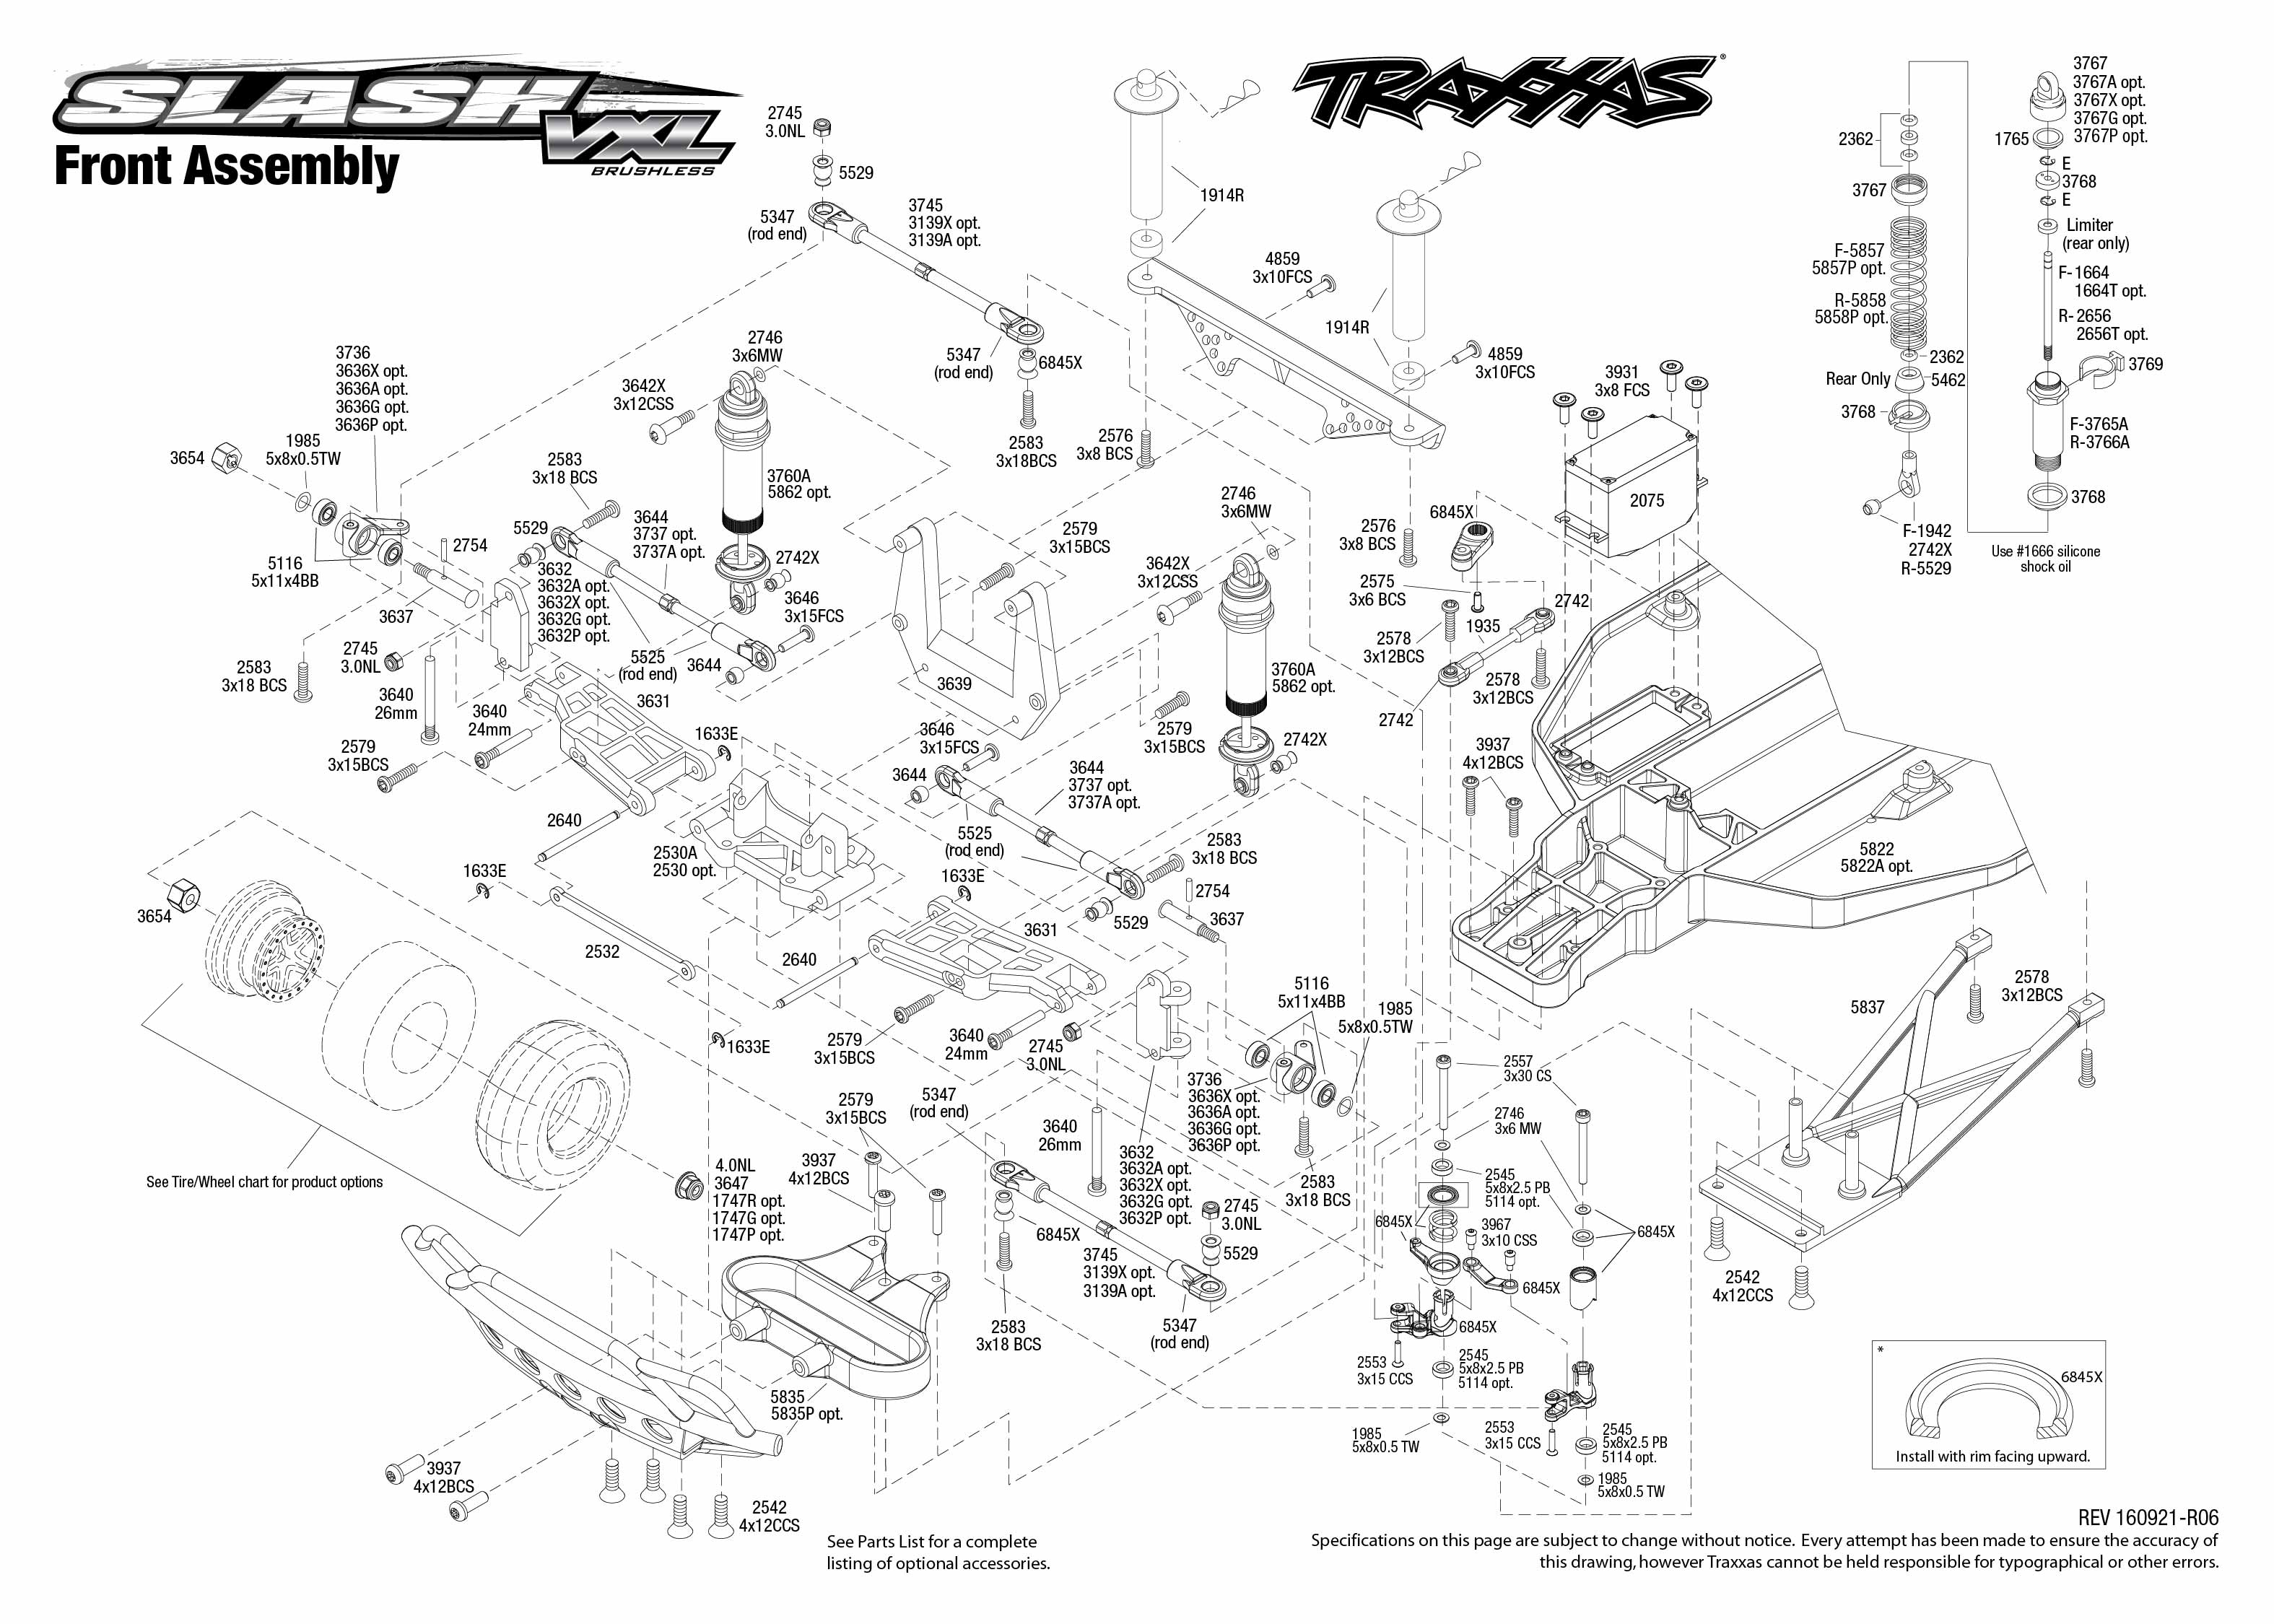 Traxxas Slash Wiring Diagram Library Servo Photo Album Wire Images Inspirations Exploded View 110 Vxl Brushless Tqi Lcg Tsm Rtr Front